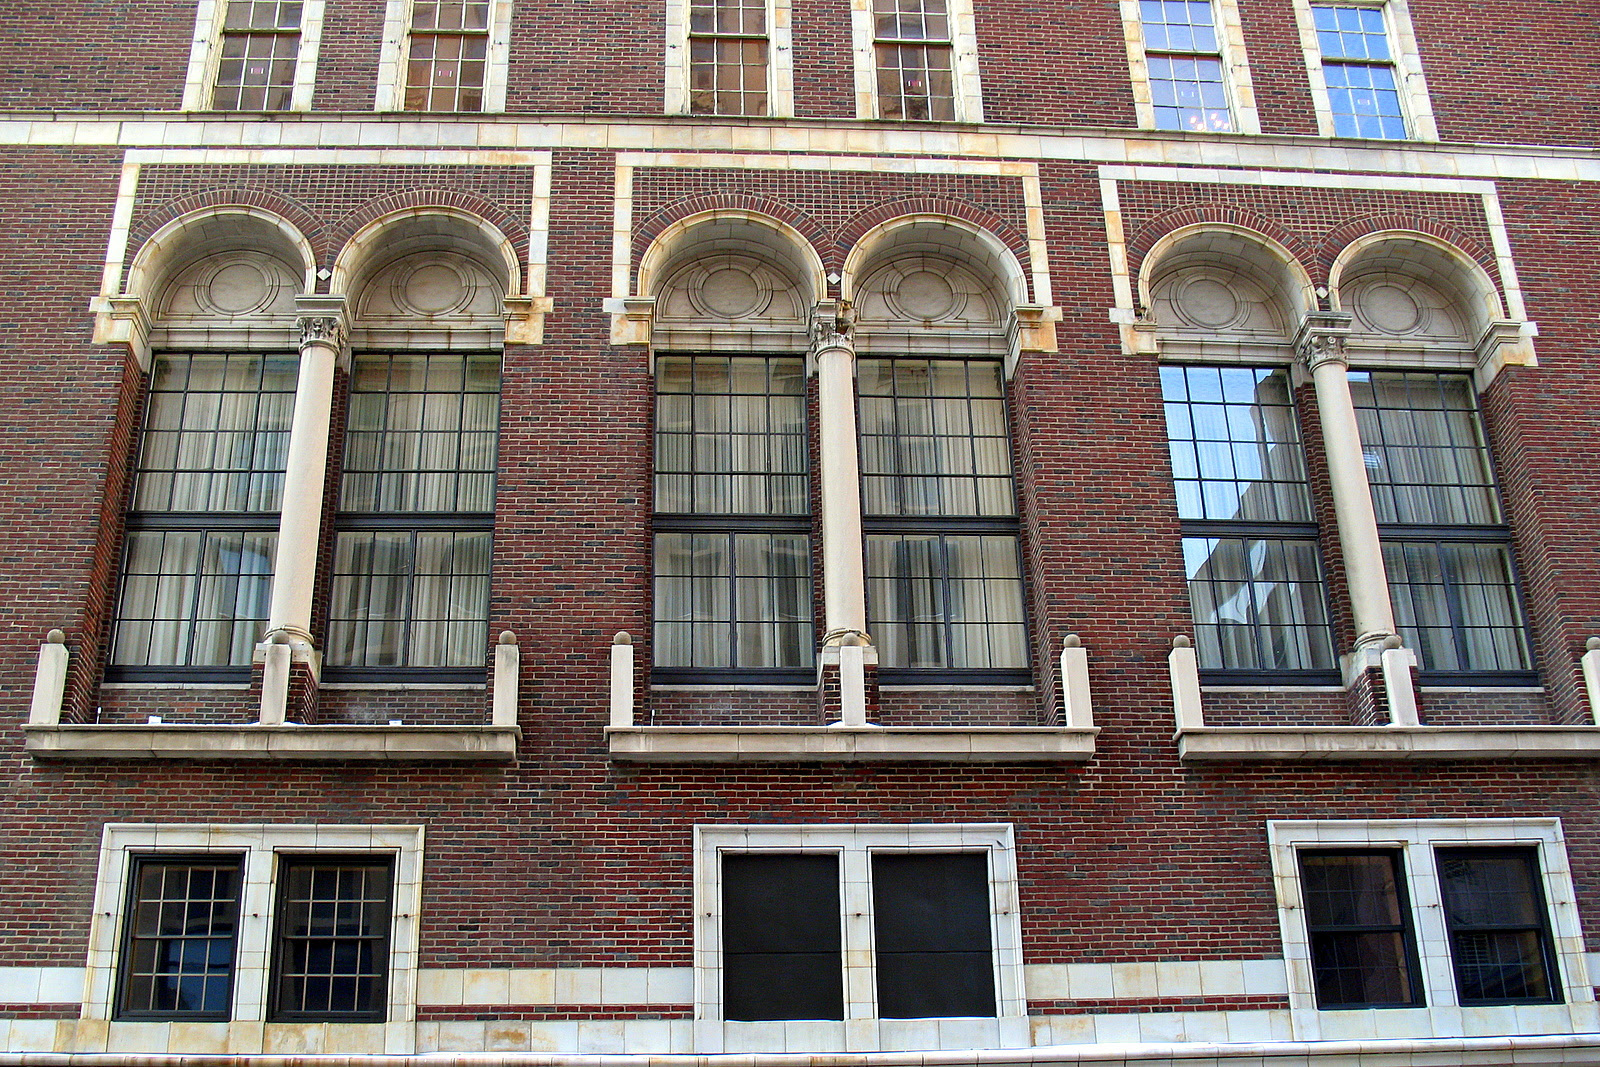 View of the windows for the Saint Paul Athletic Club building in the Twin Cities